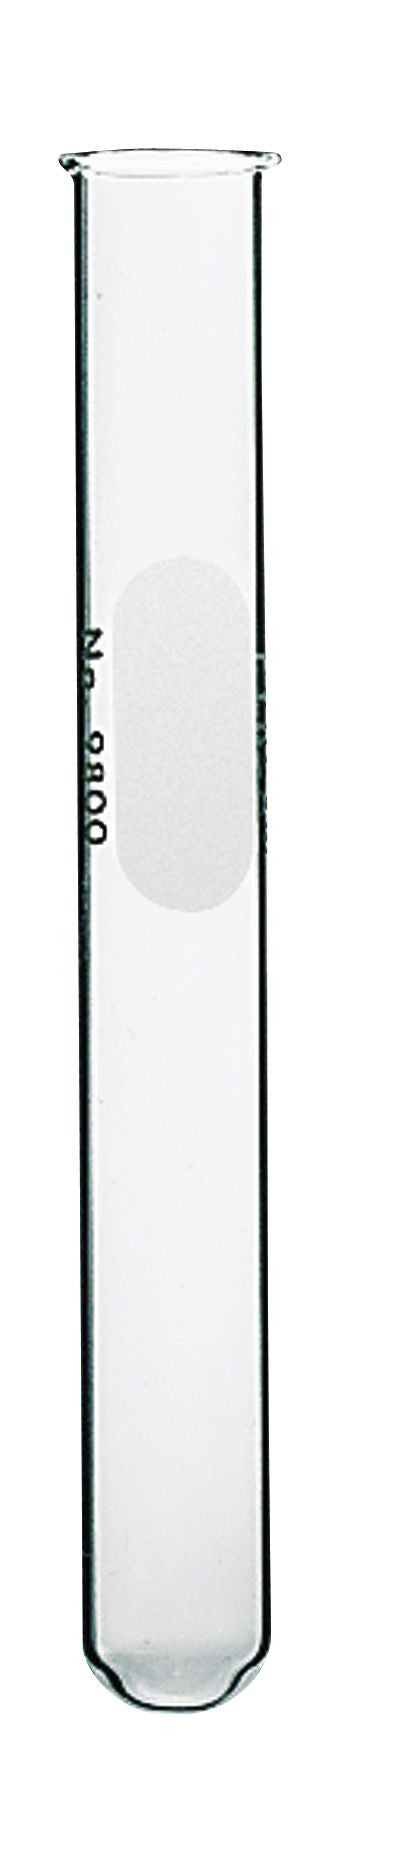 PYREX® 34mL Test Tubes, 20x150mm ~ Glass 6/pk - The Science Shop